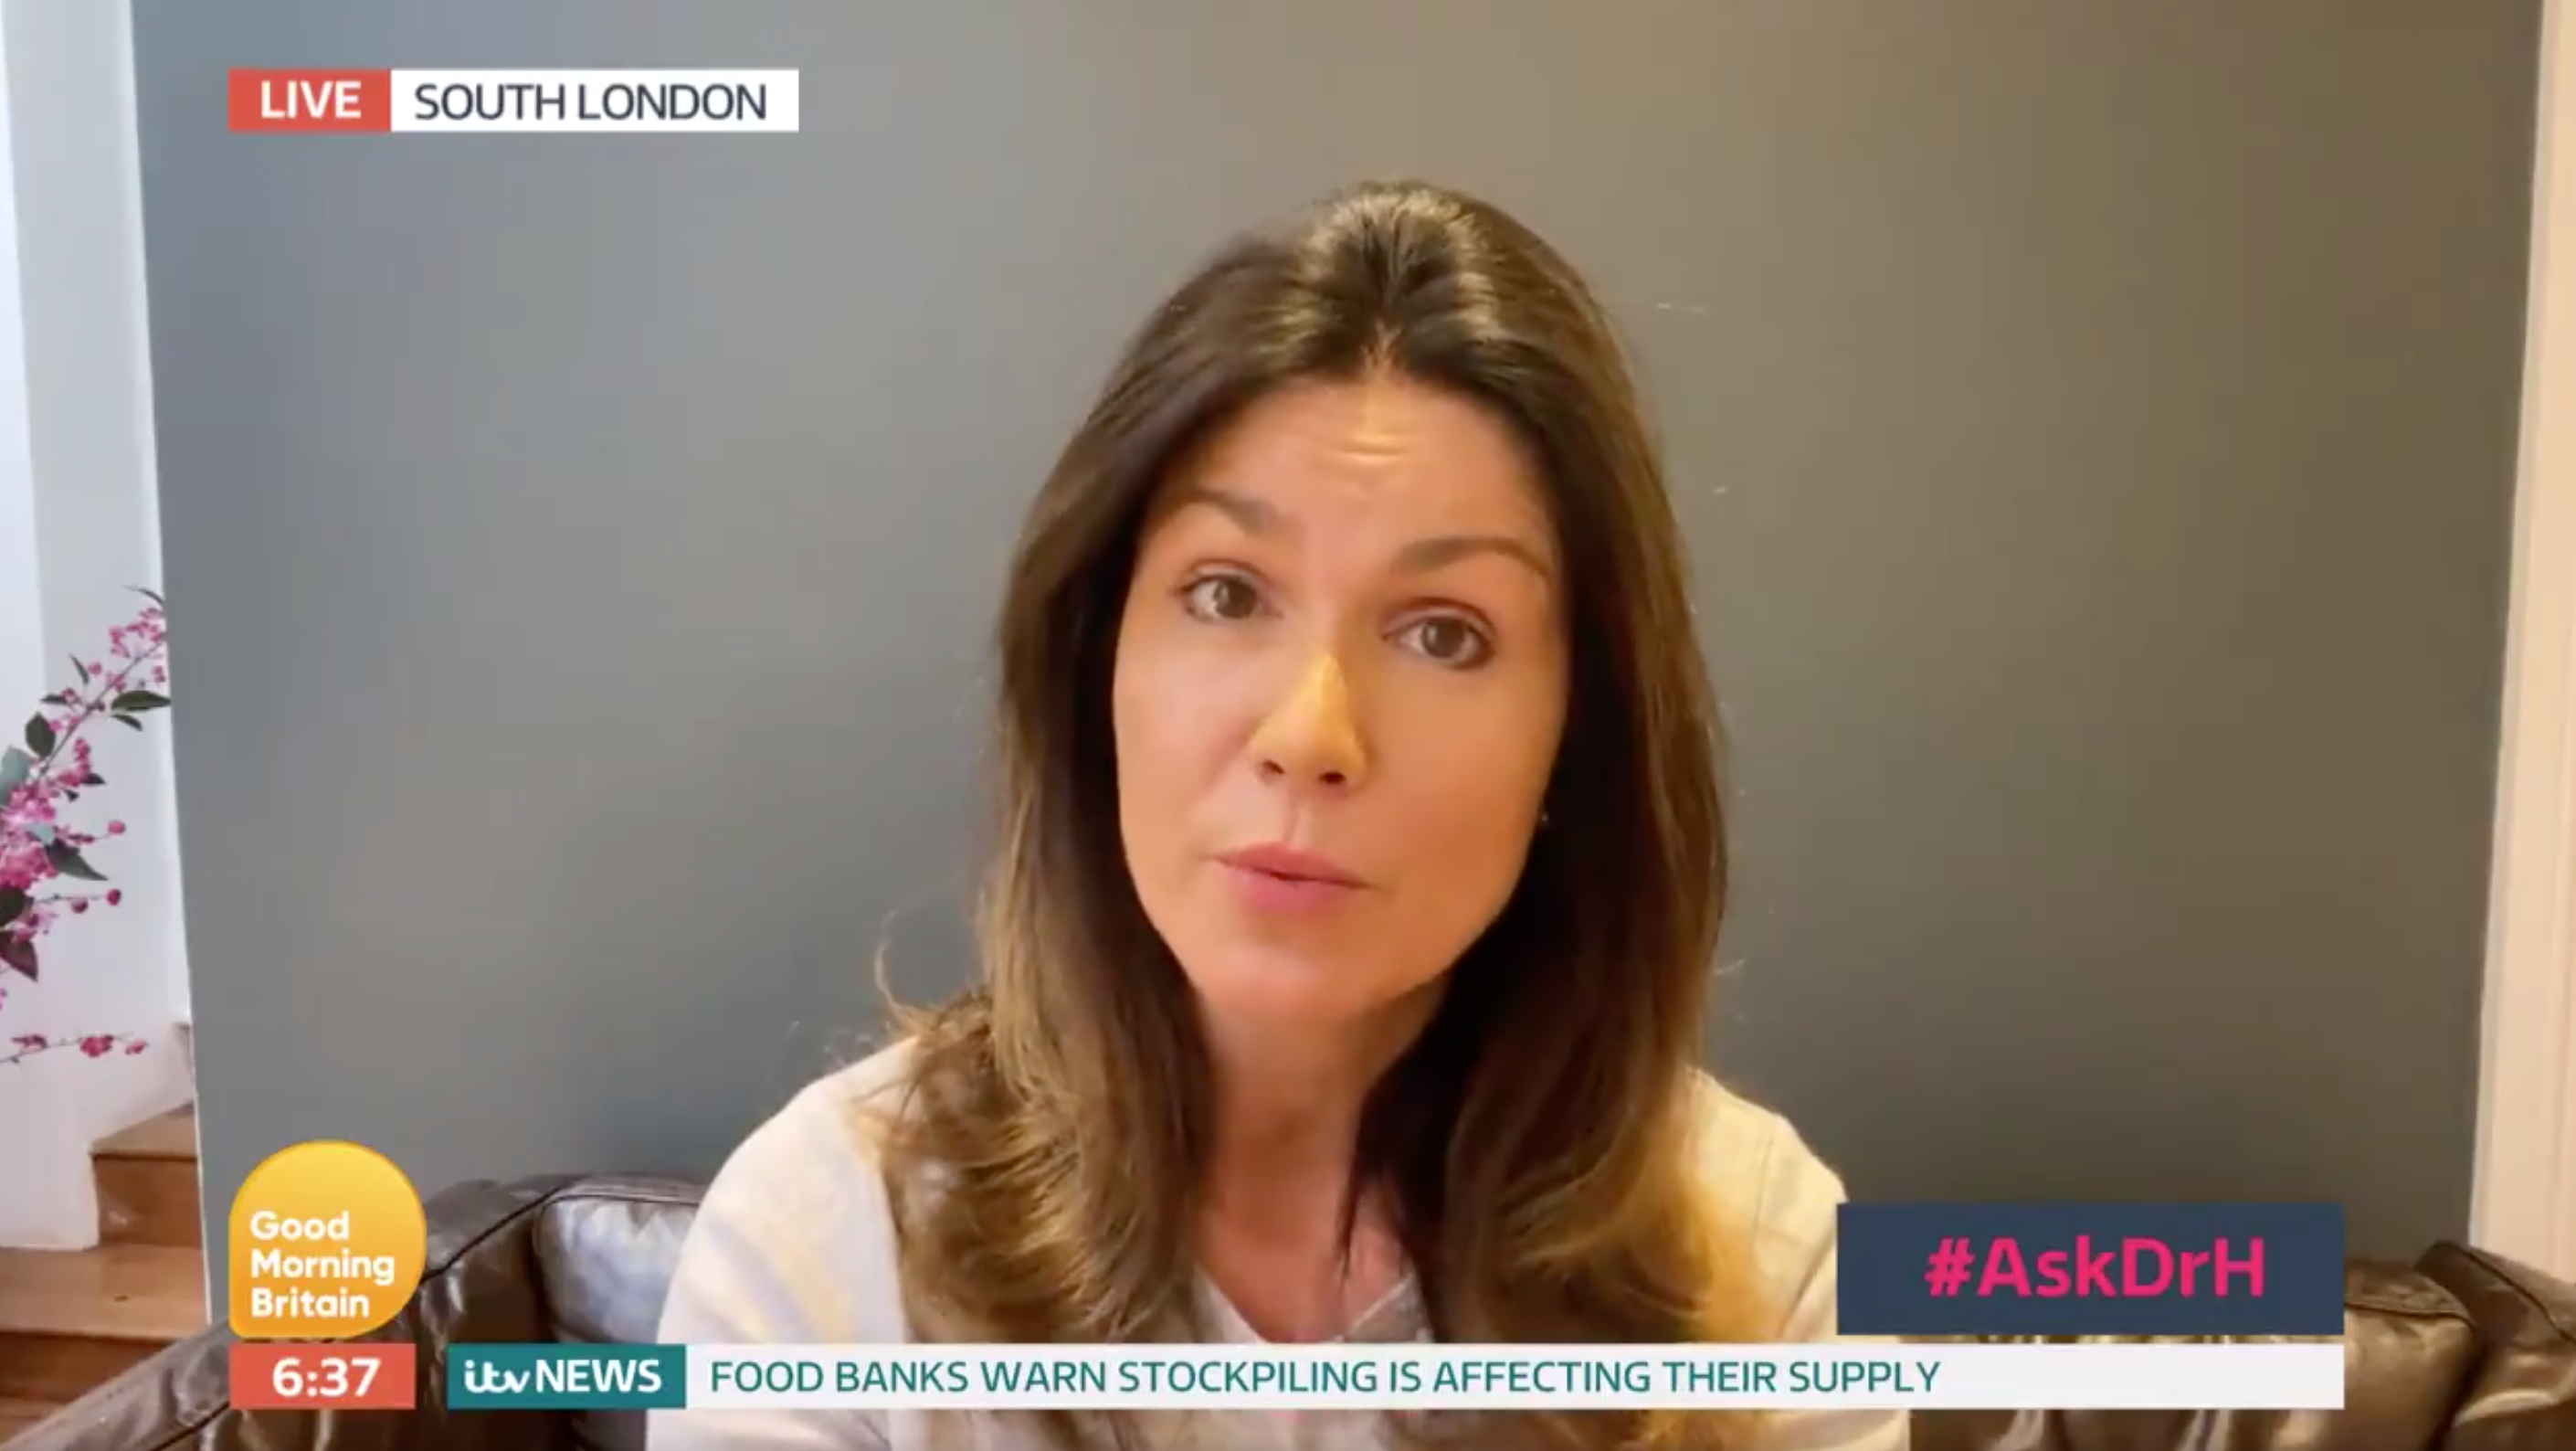 Good Morning Britain's Susanna Reid gave an update on her situation amid the coronavirus outbreak (Credit: ITV)